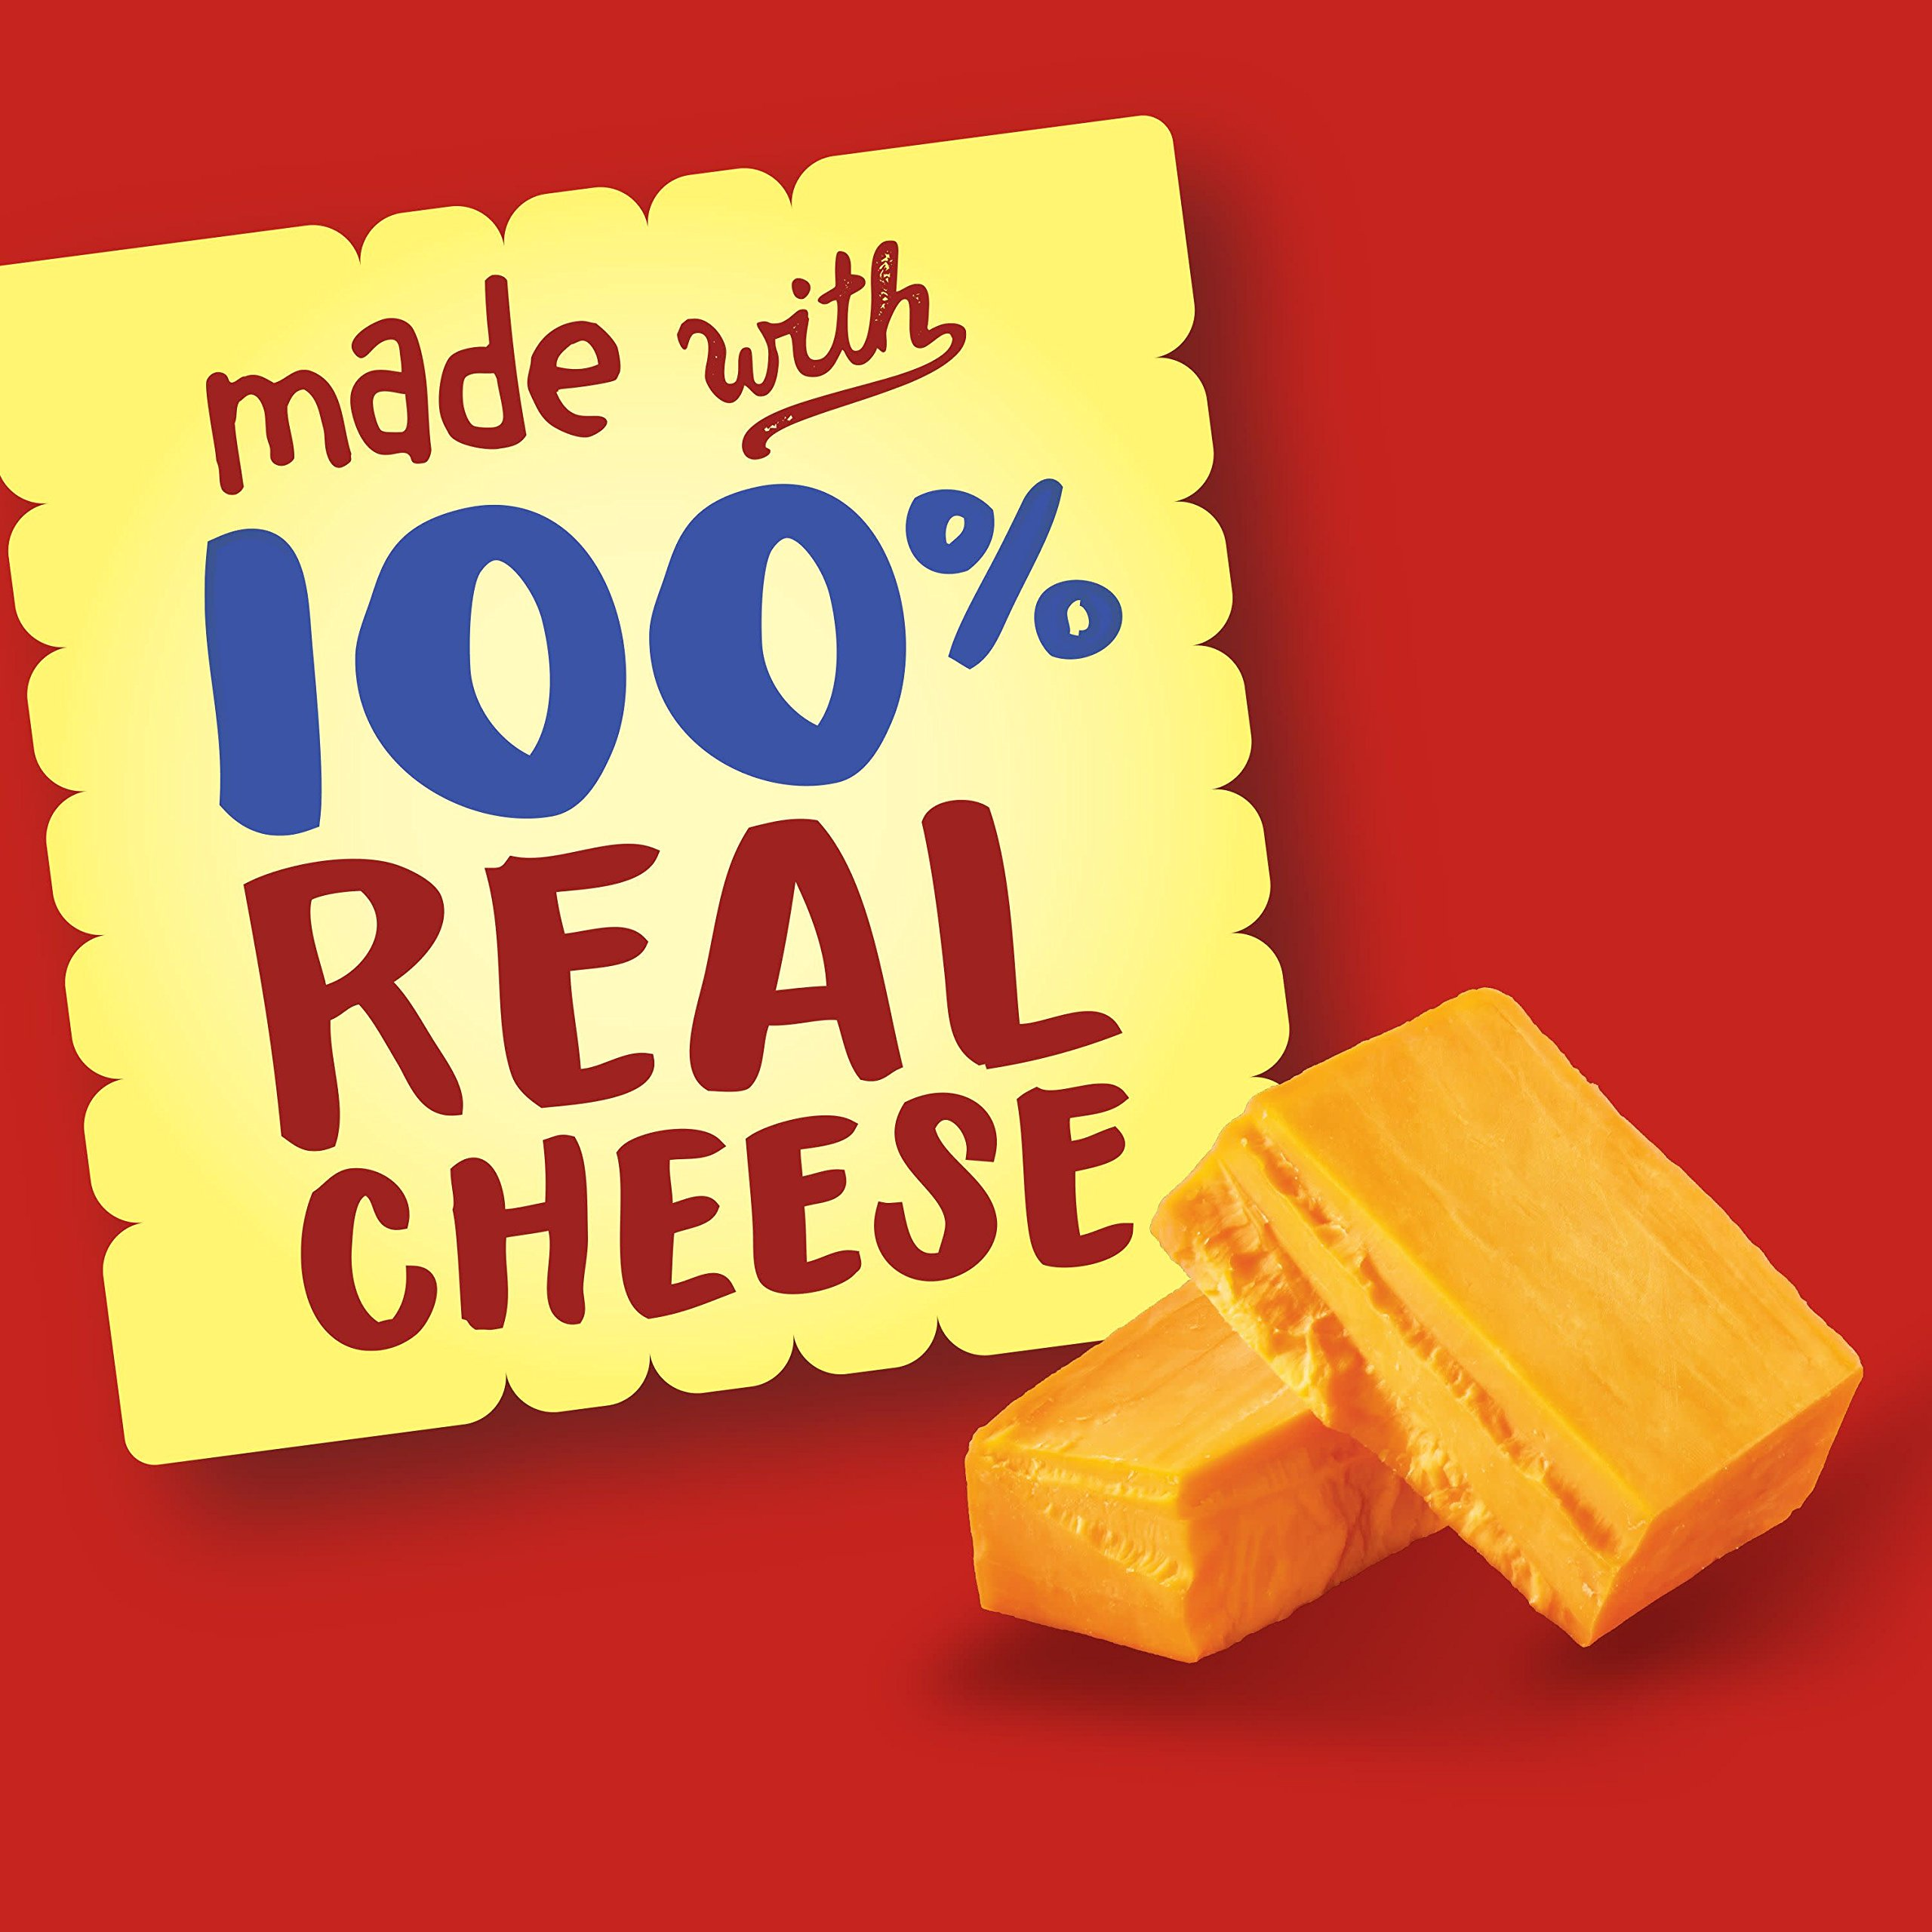 Cheez-It Baked Snack Cheese Crackers, Reduced Fat, Original, 6 oz Box(Pack of 12) by Cheez-It (Image #5)